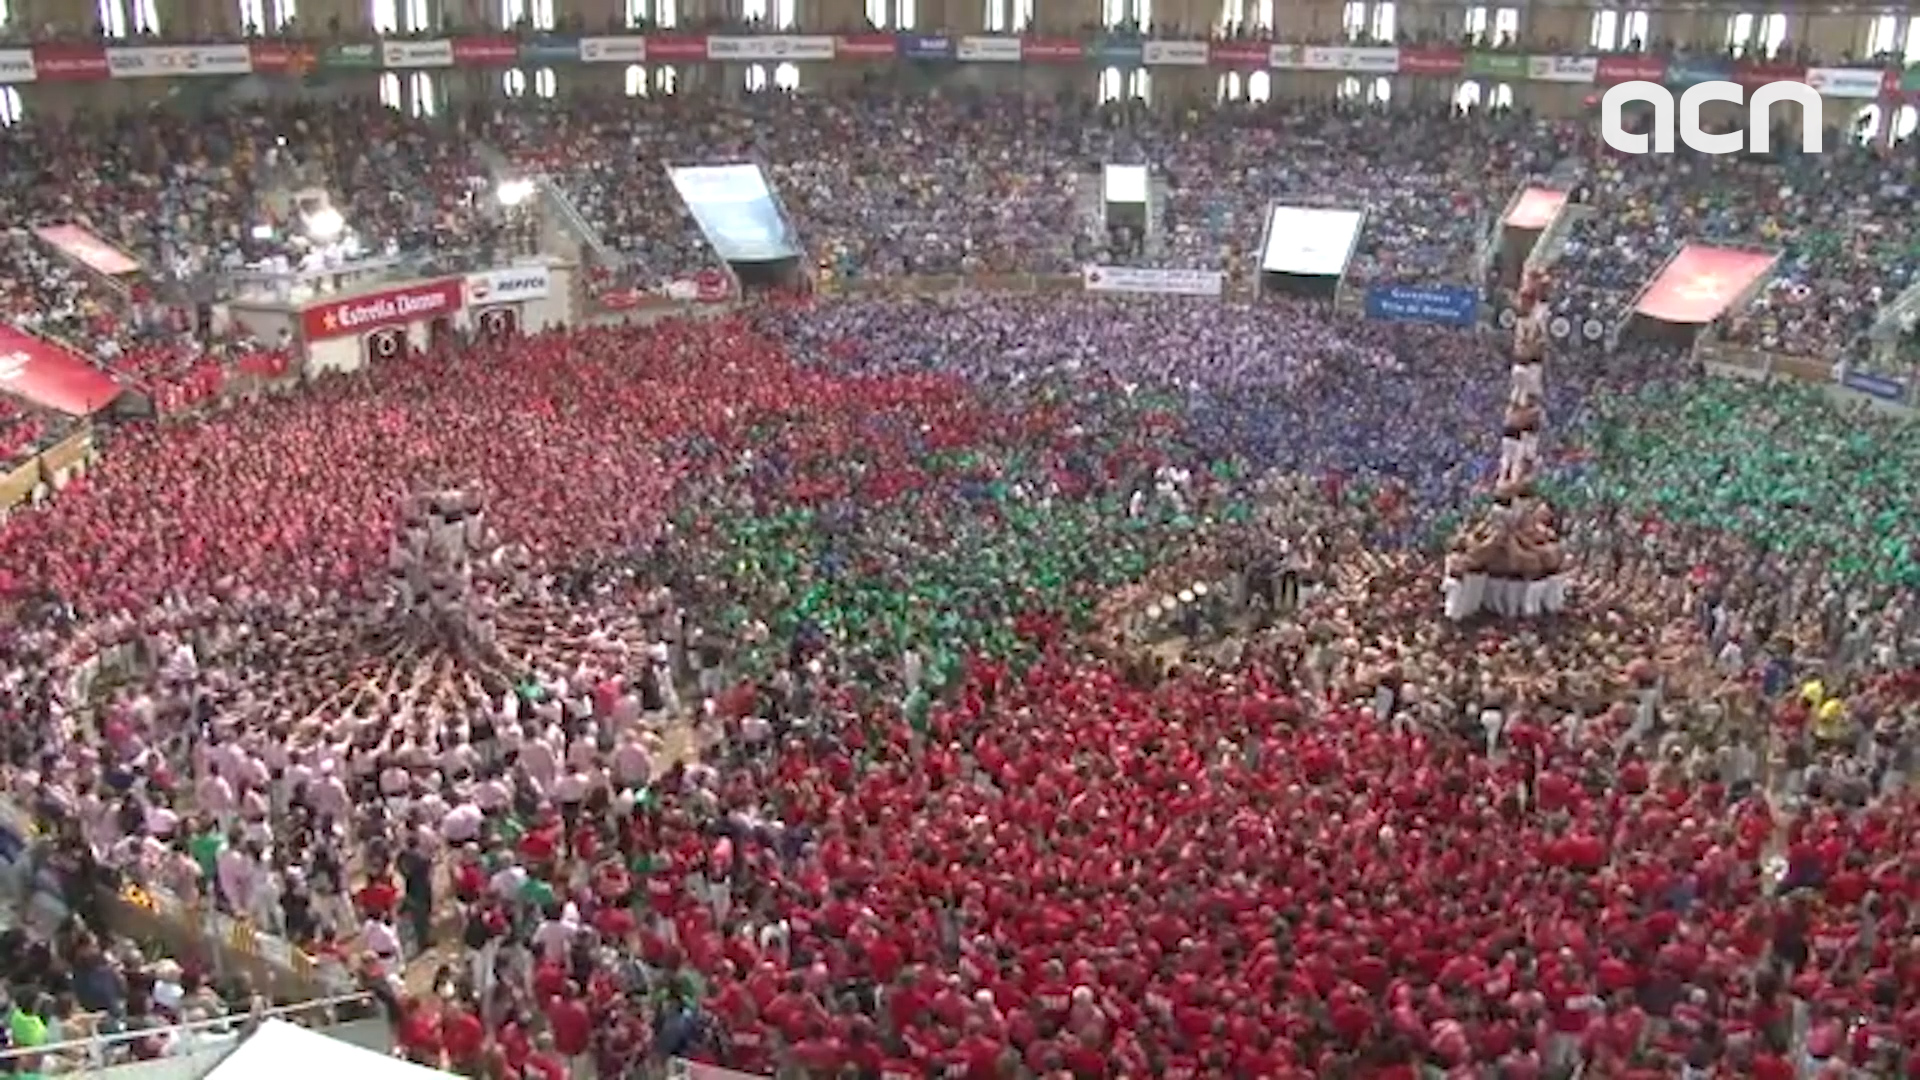 Catalonia's main 'castells' contest to be held in Tarragona this weekend